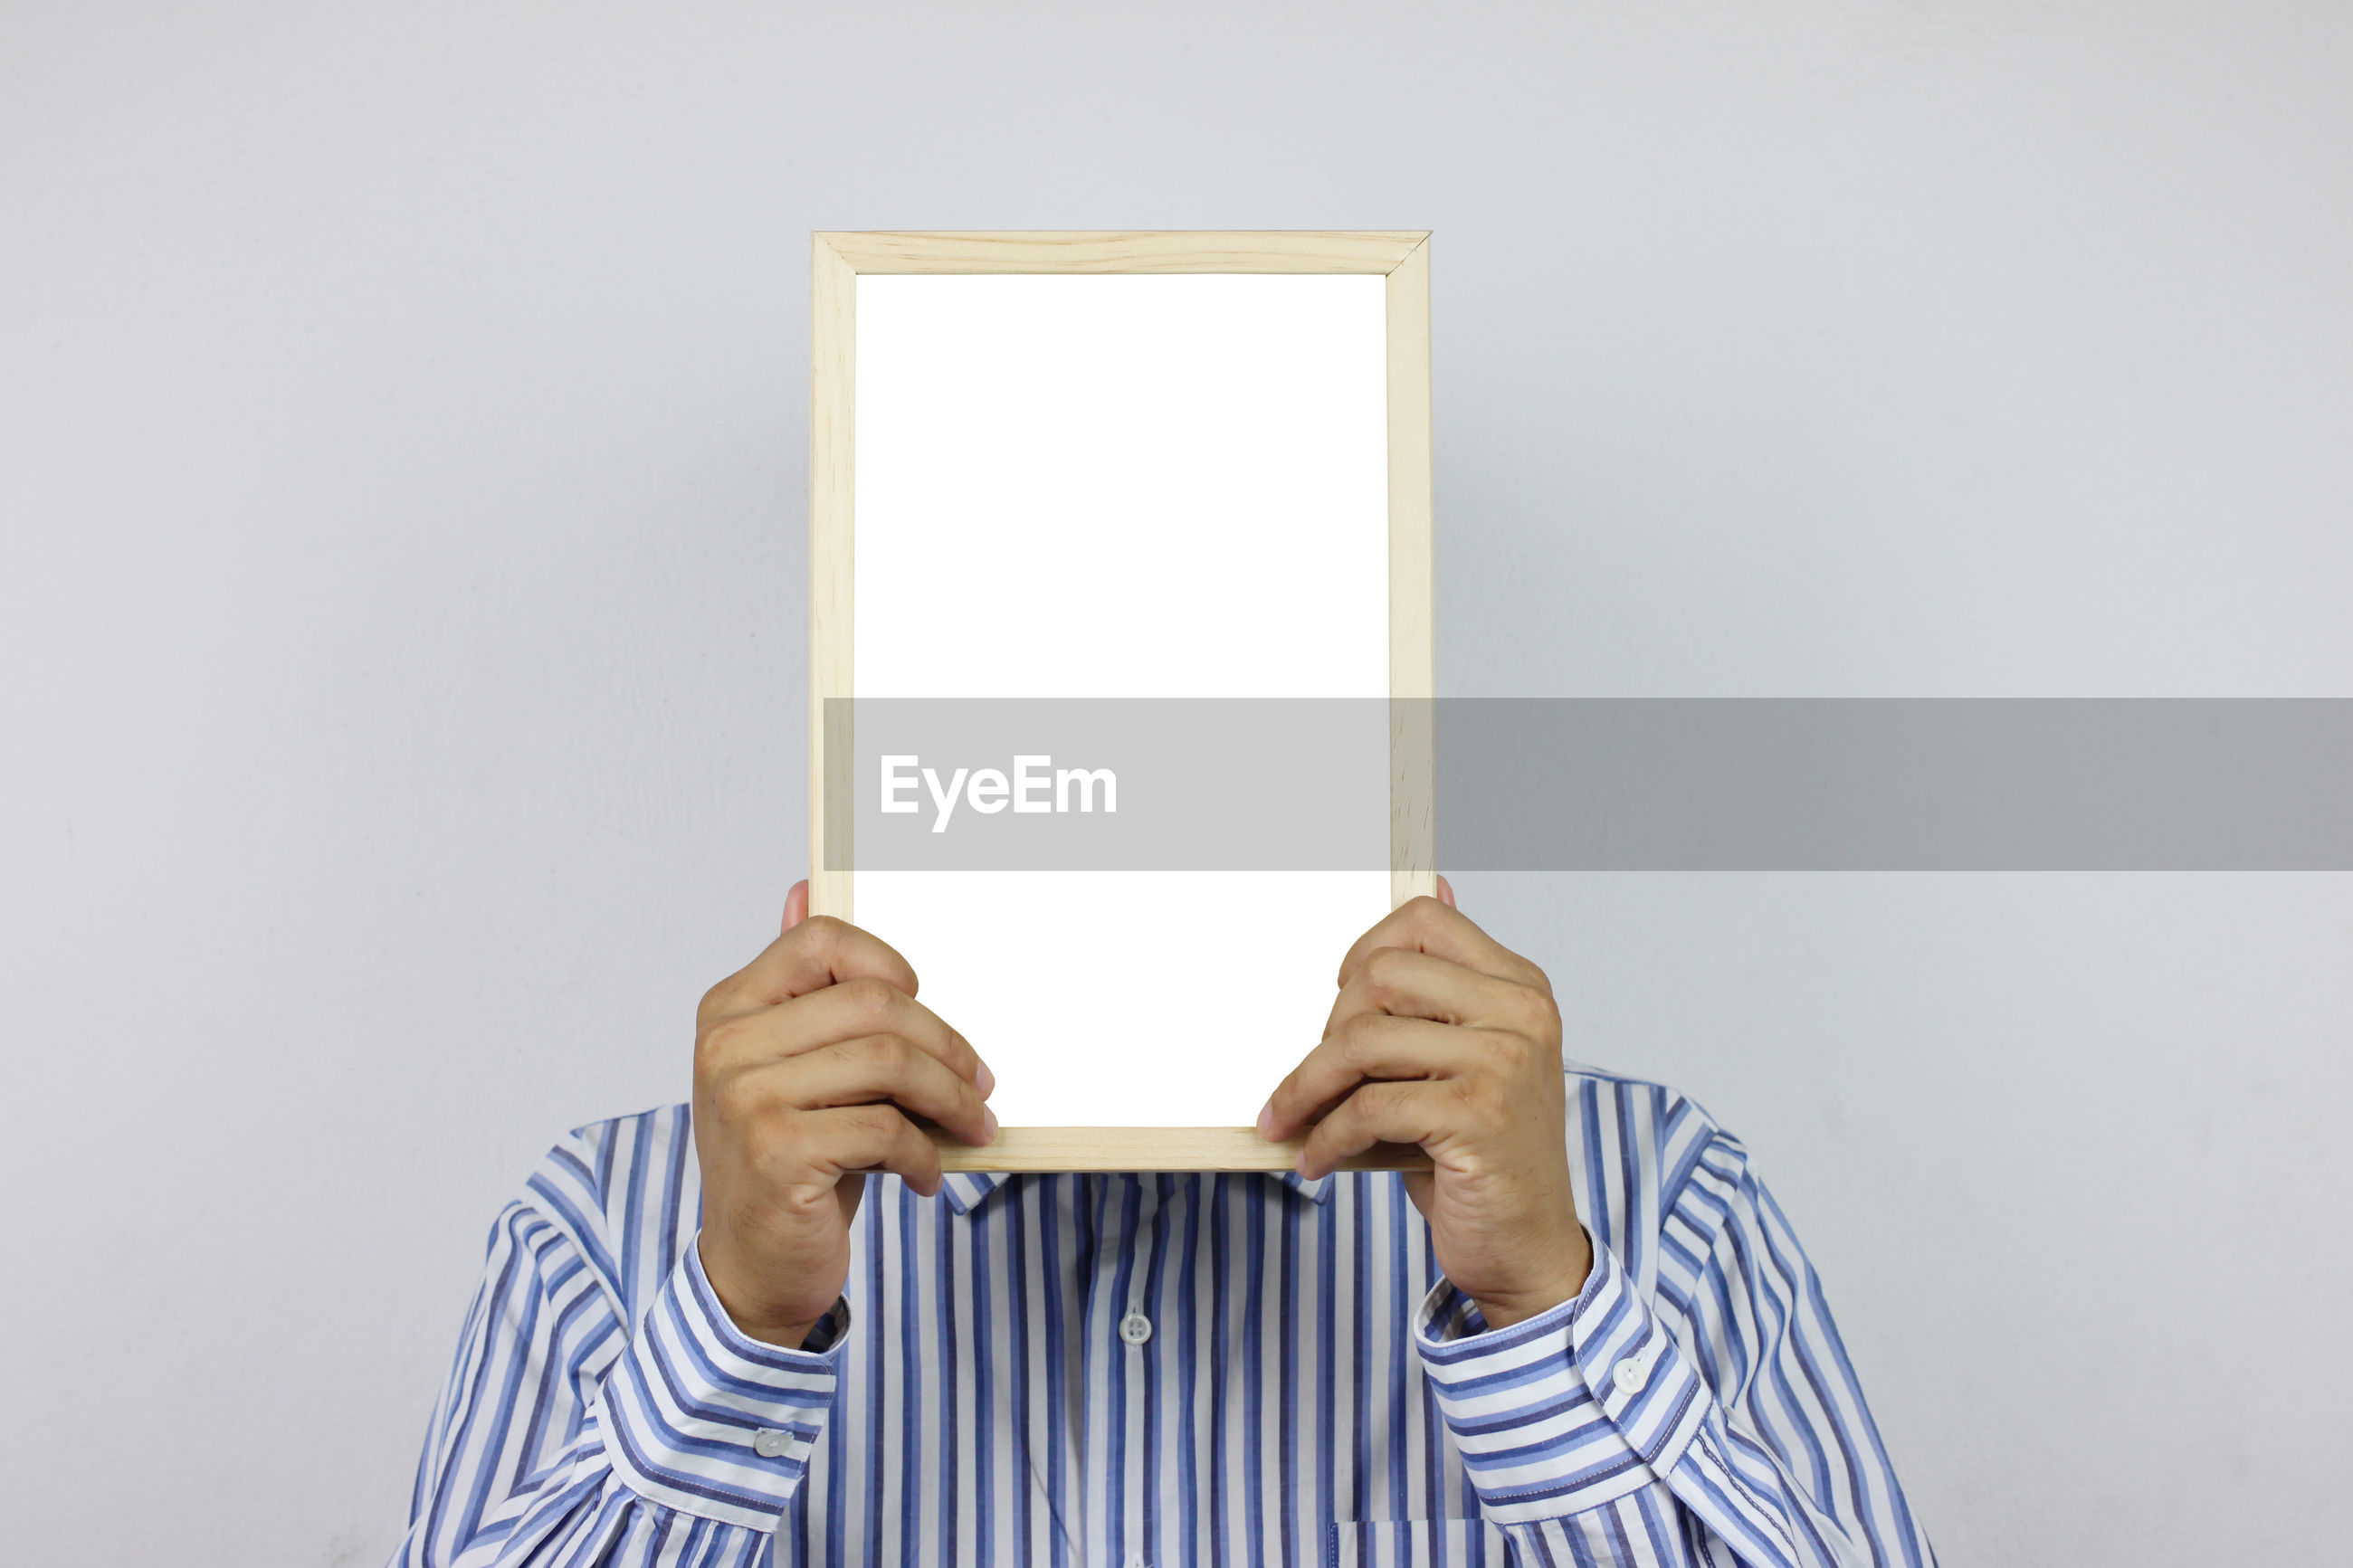 Close-up of man holding blank whiteboard against white background